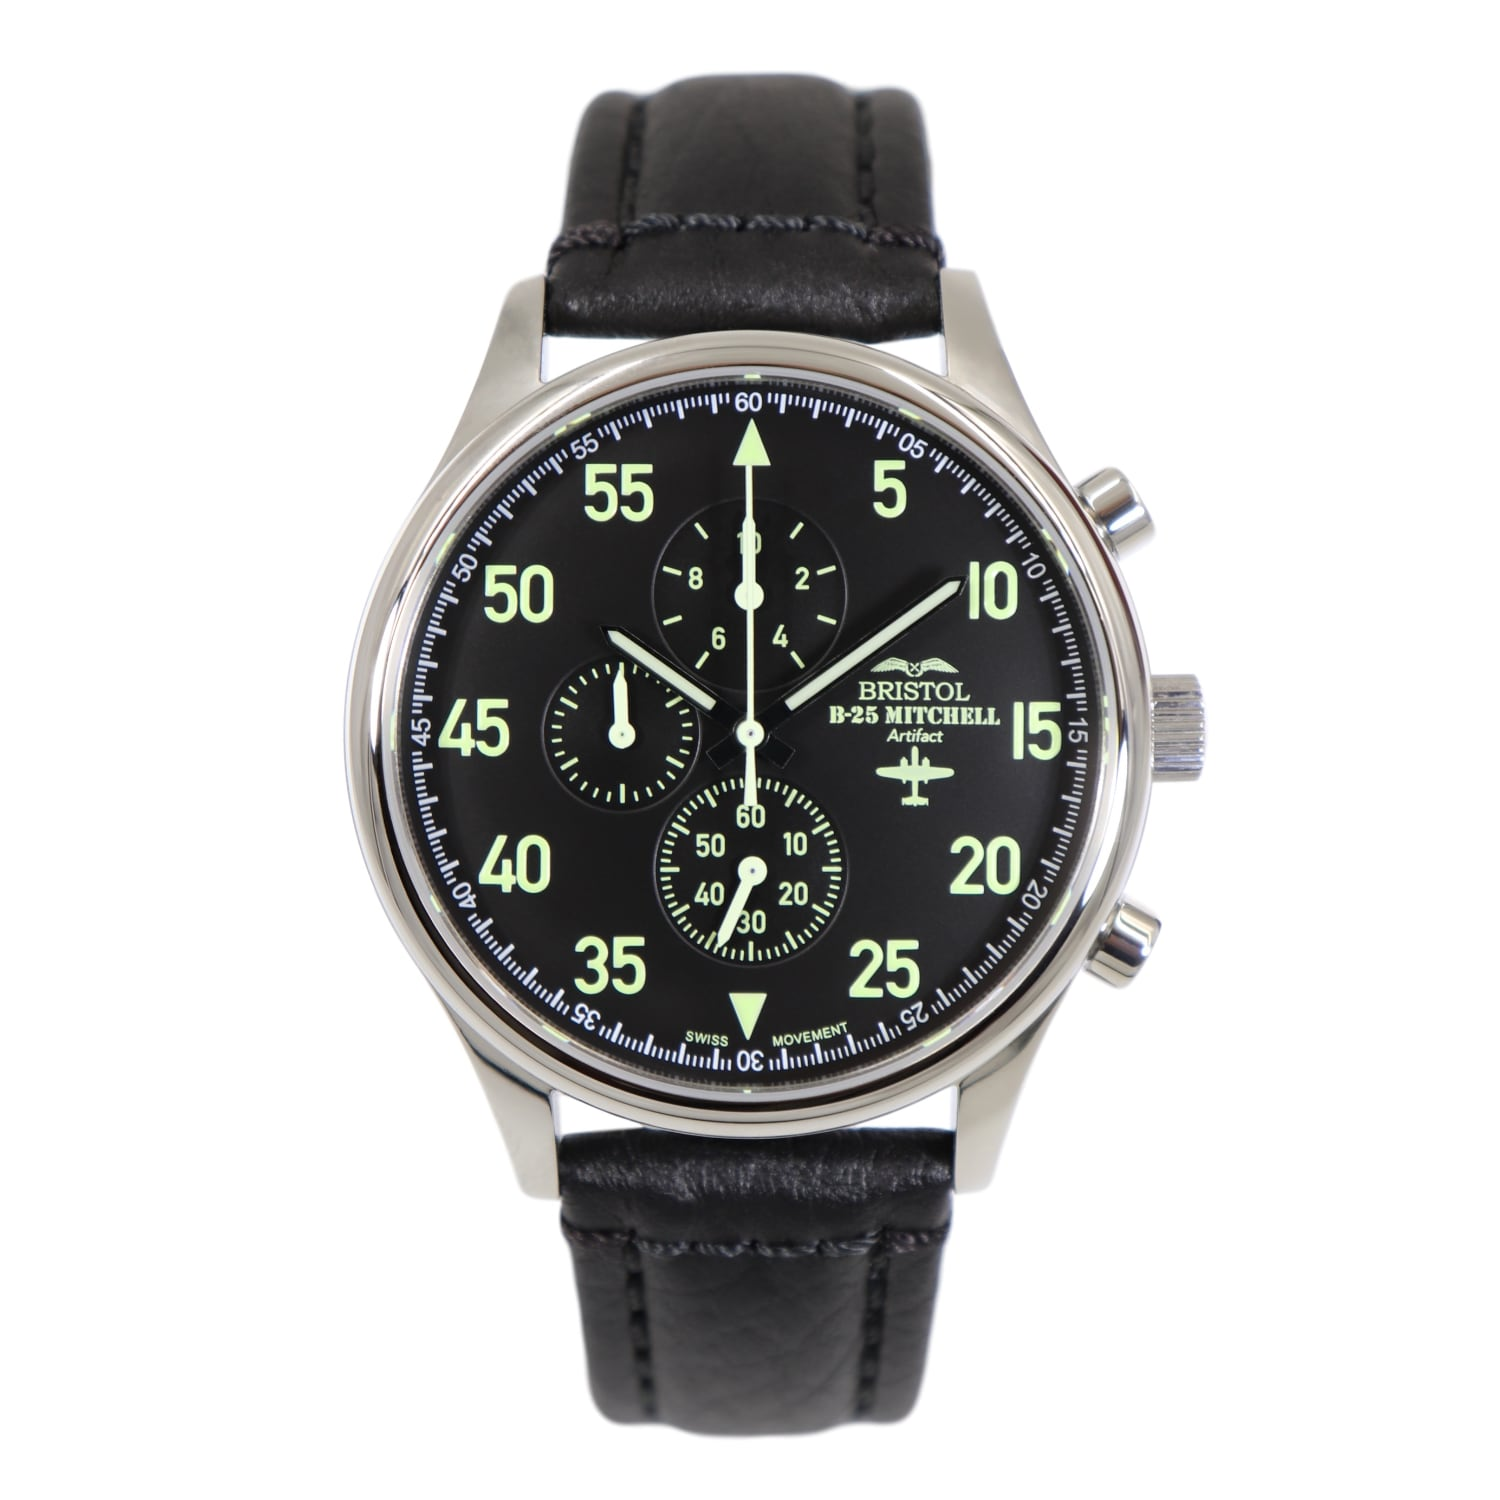 86d535aa9 Sale. B-25 Mitchell - Stainless Steel, Polished Finish, Black Leather Band  - Bristol